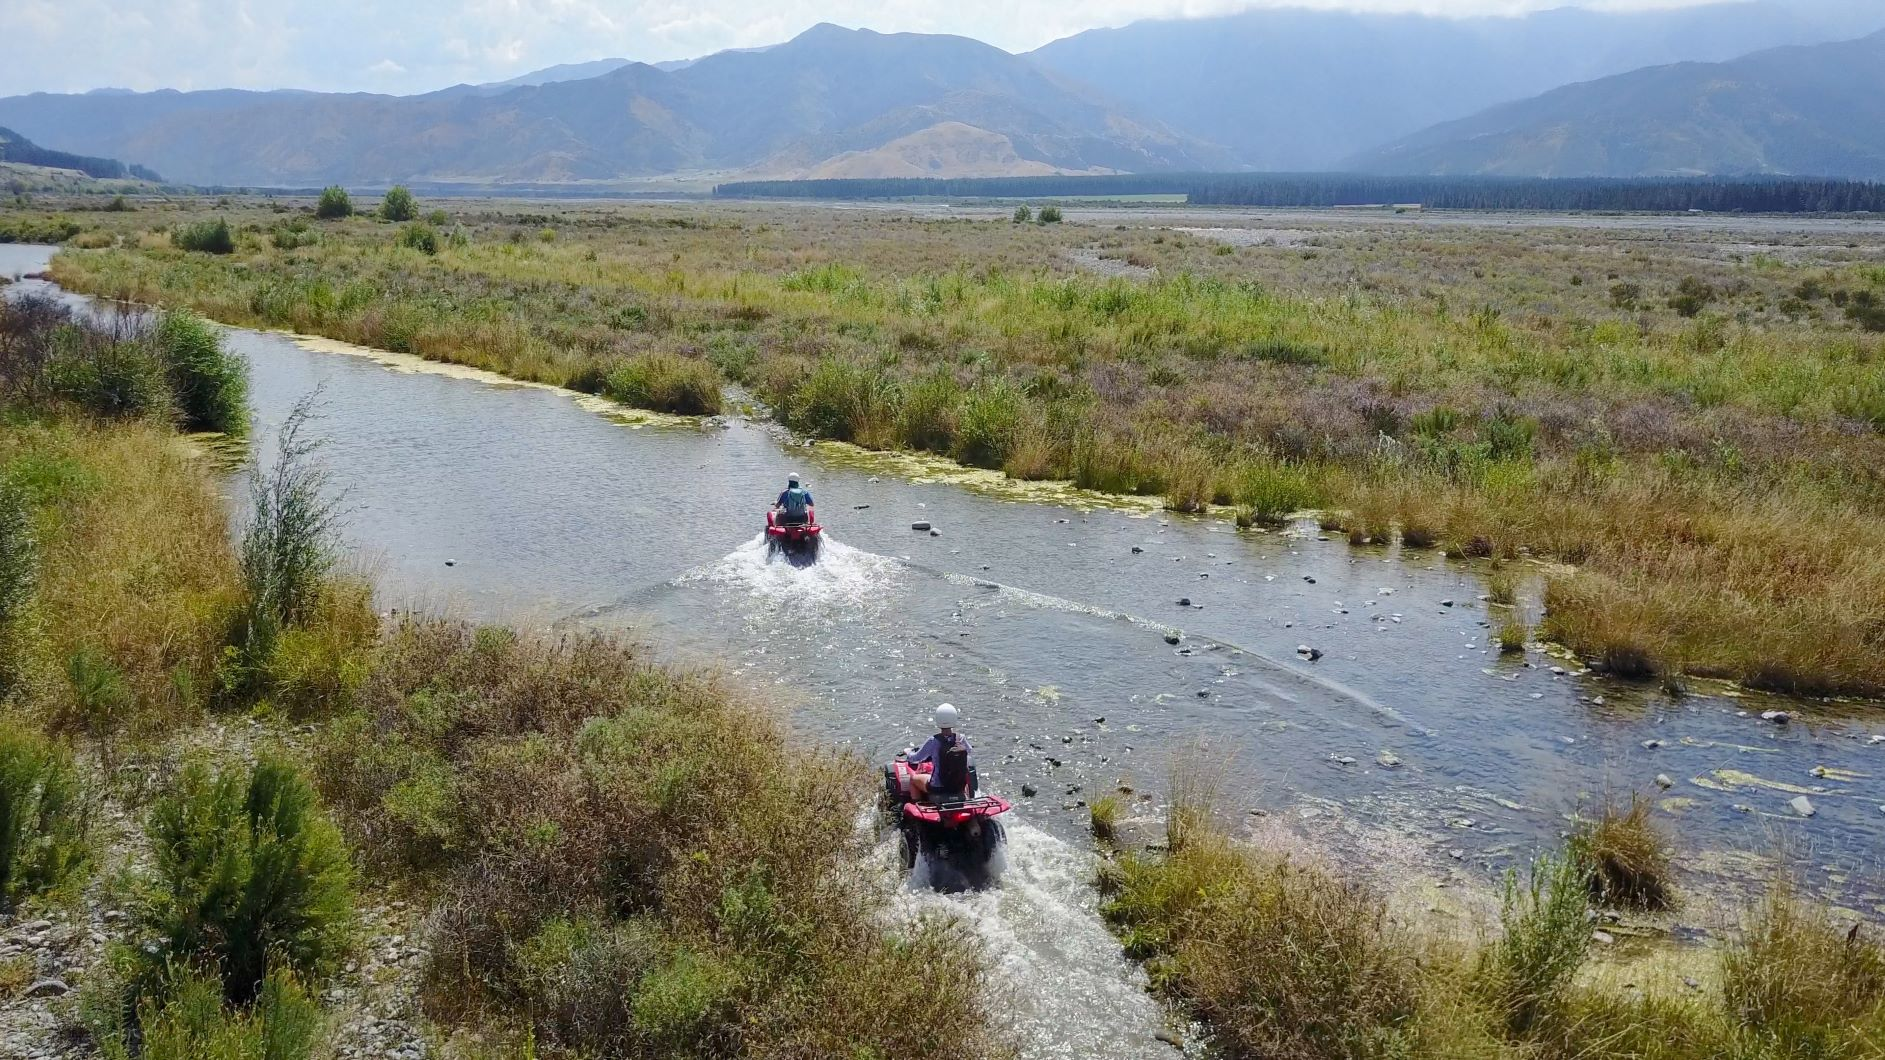 Two people driving through a river on Hanmer Springs Attractions quad bikes